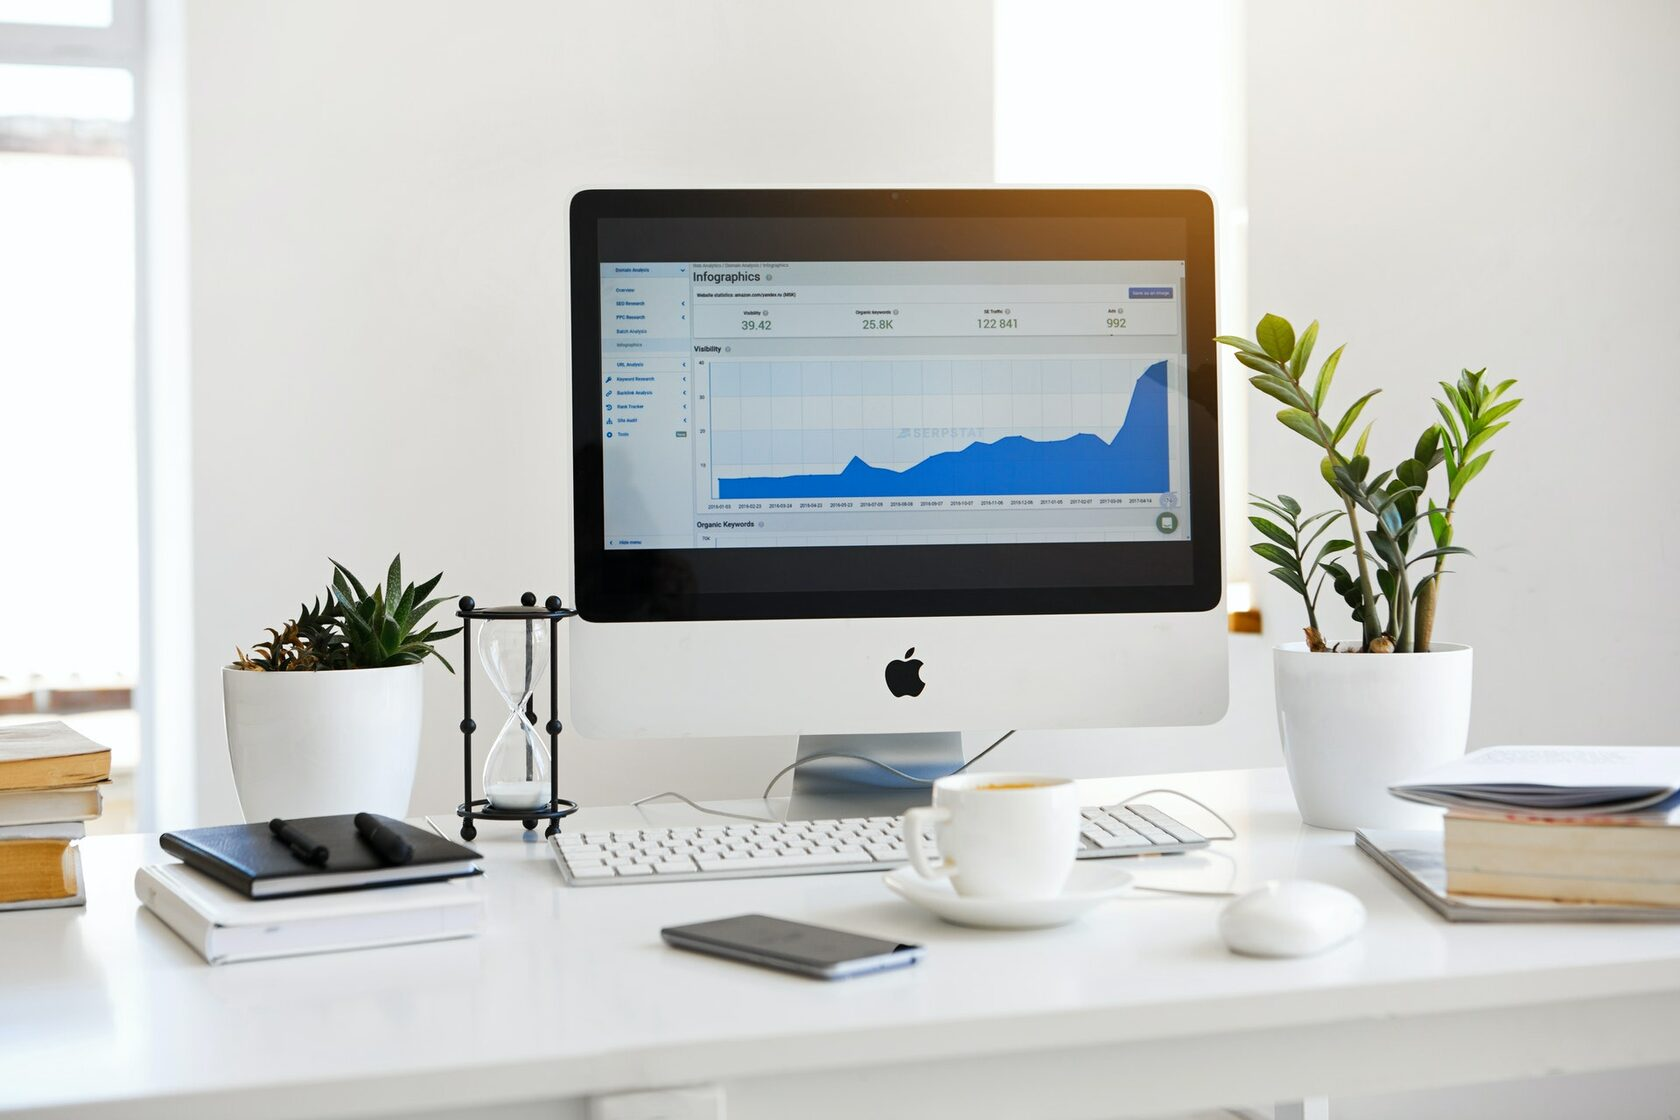 An image of a marketing workstation with a computer